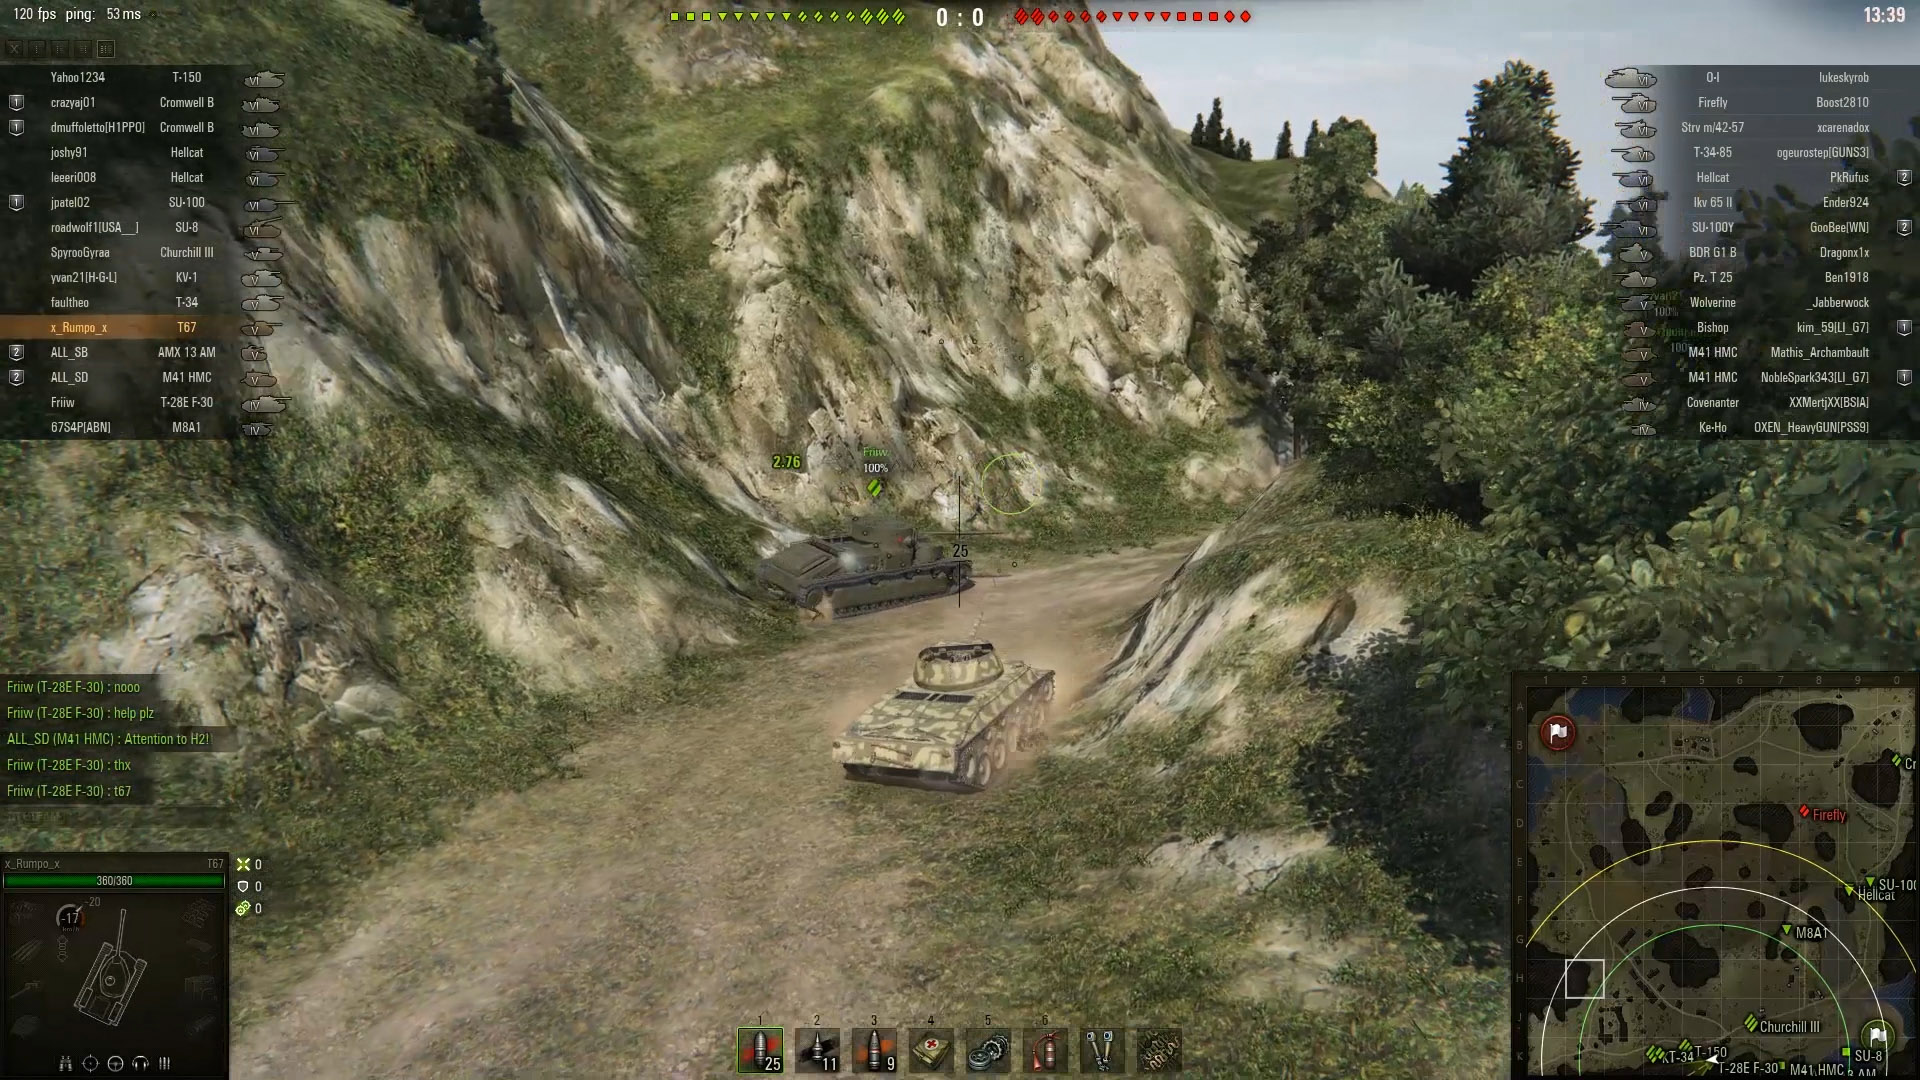 As you can see in the image above, when you help your teammate who has flipped their tank upside down, you'll be sure to receive a pleasant thank you, plus you'll ensure you have more tanks fighting toward victory!